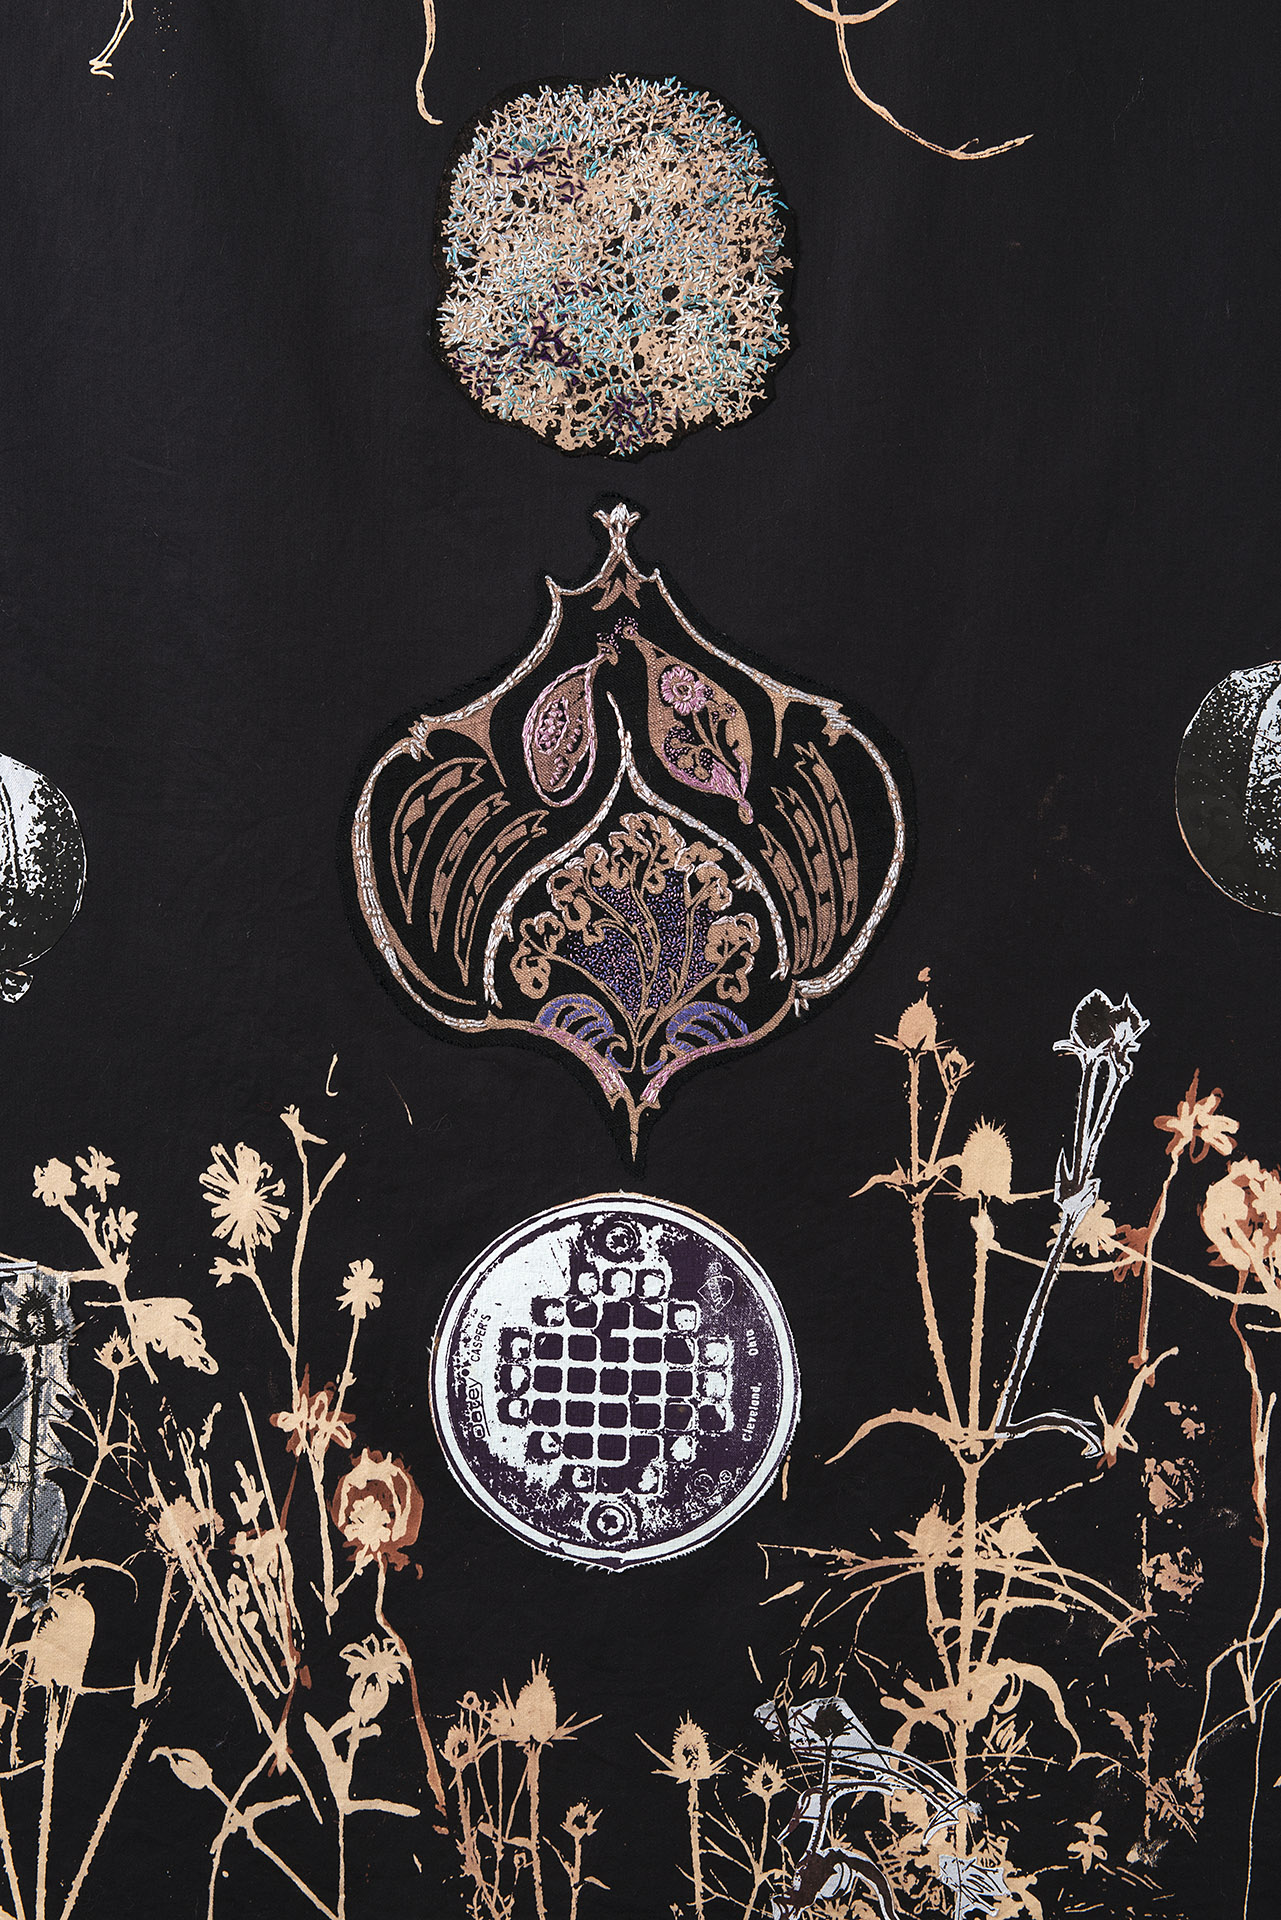 Talisman- detail showing embroidery